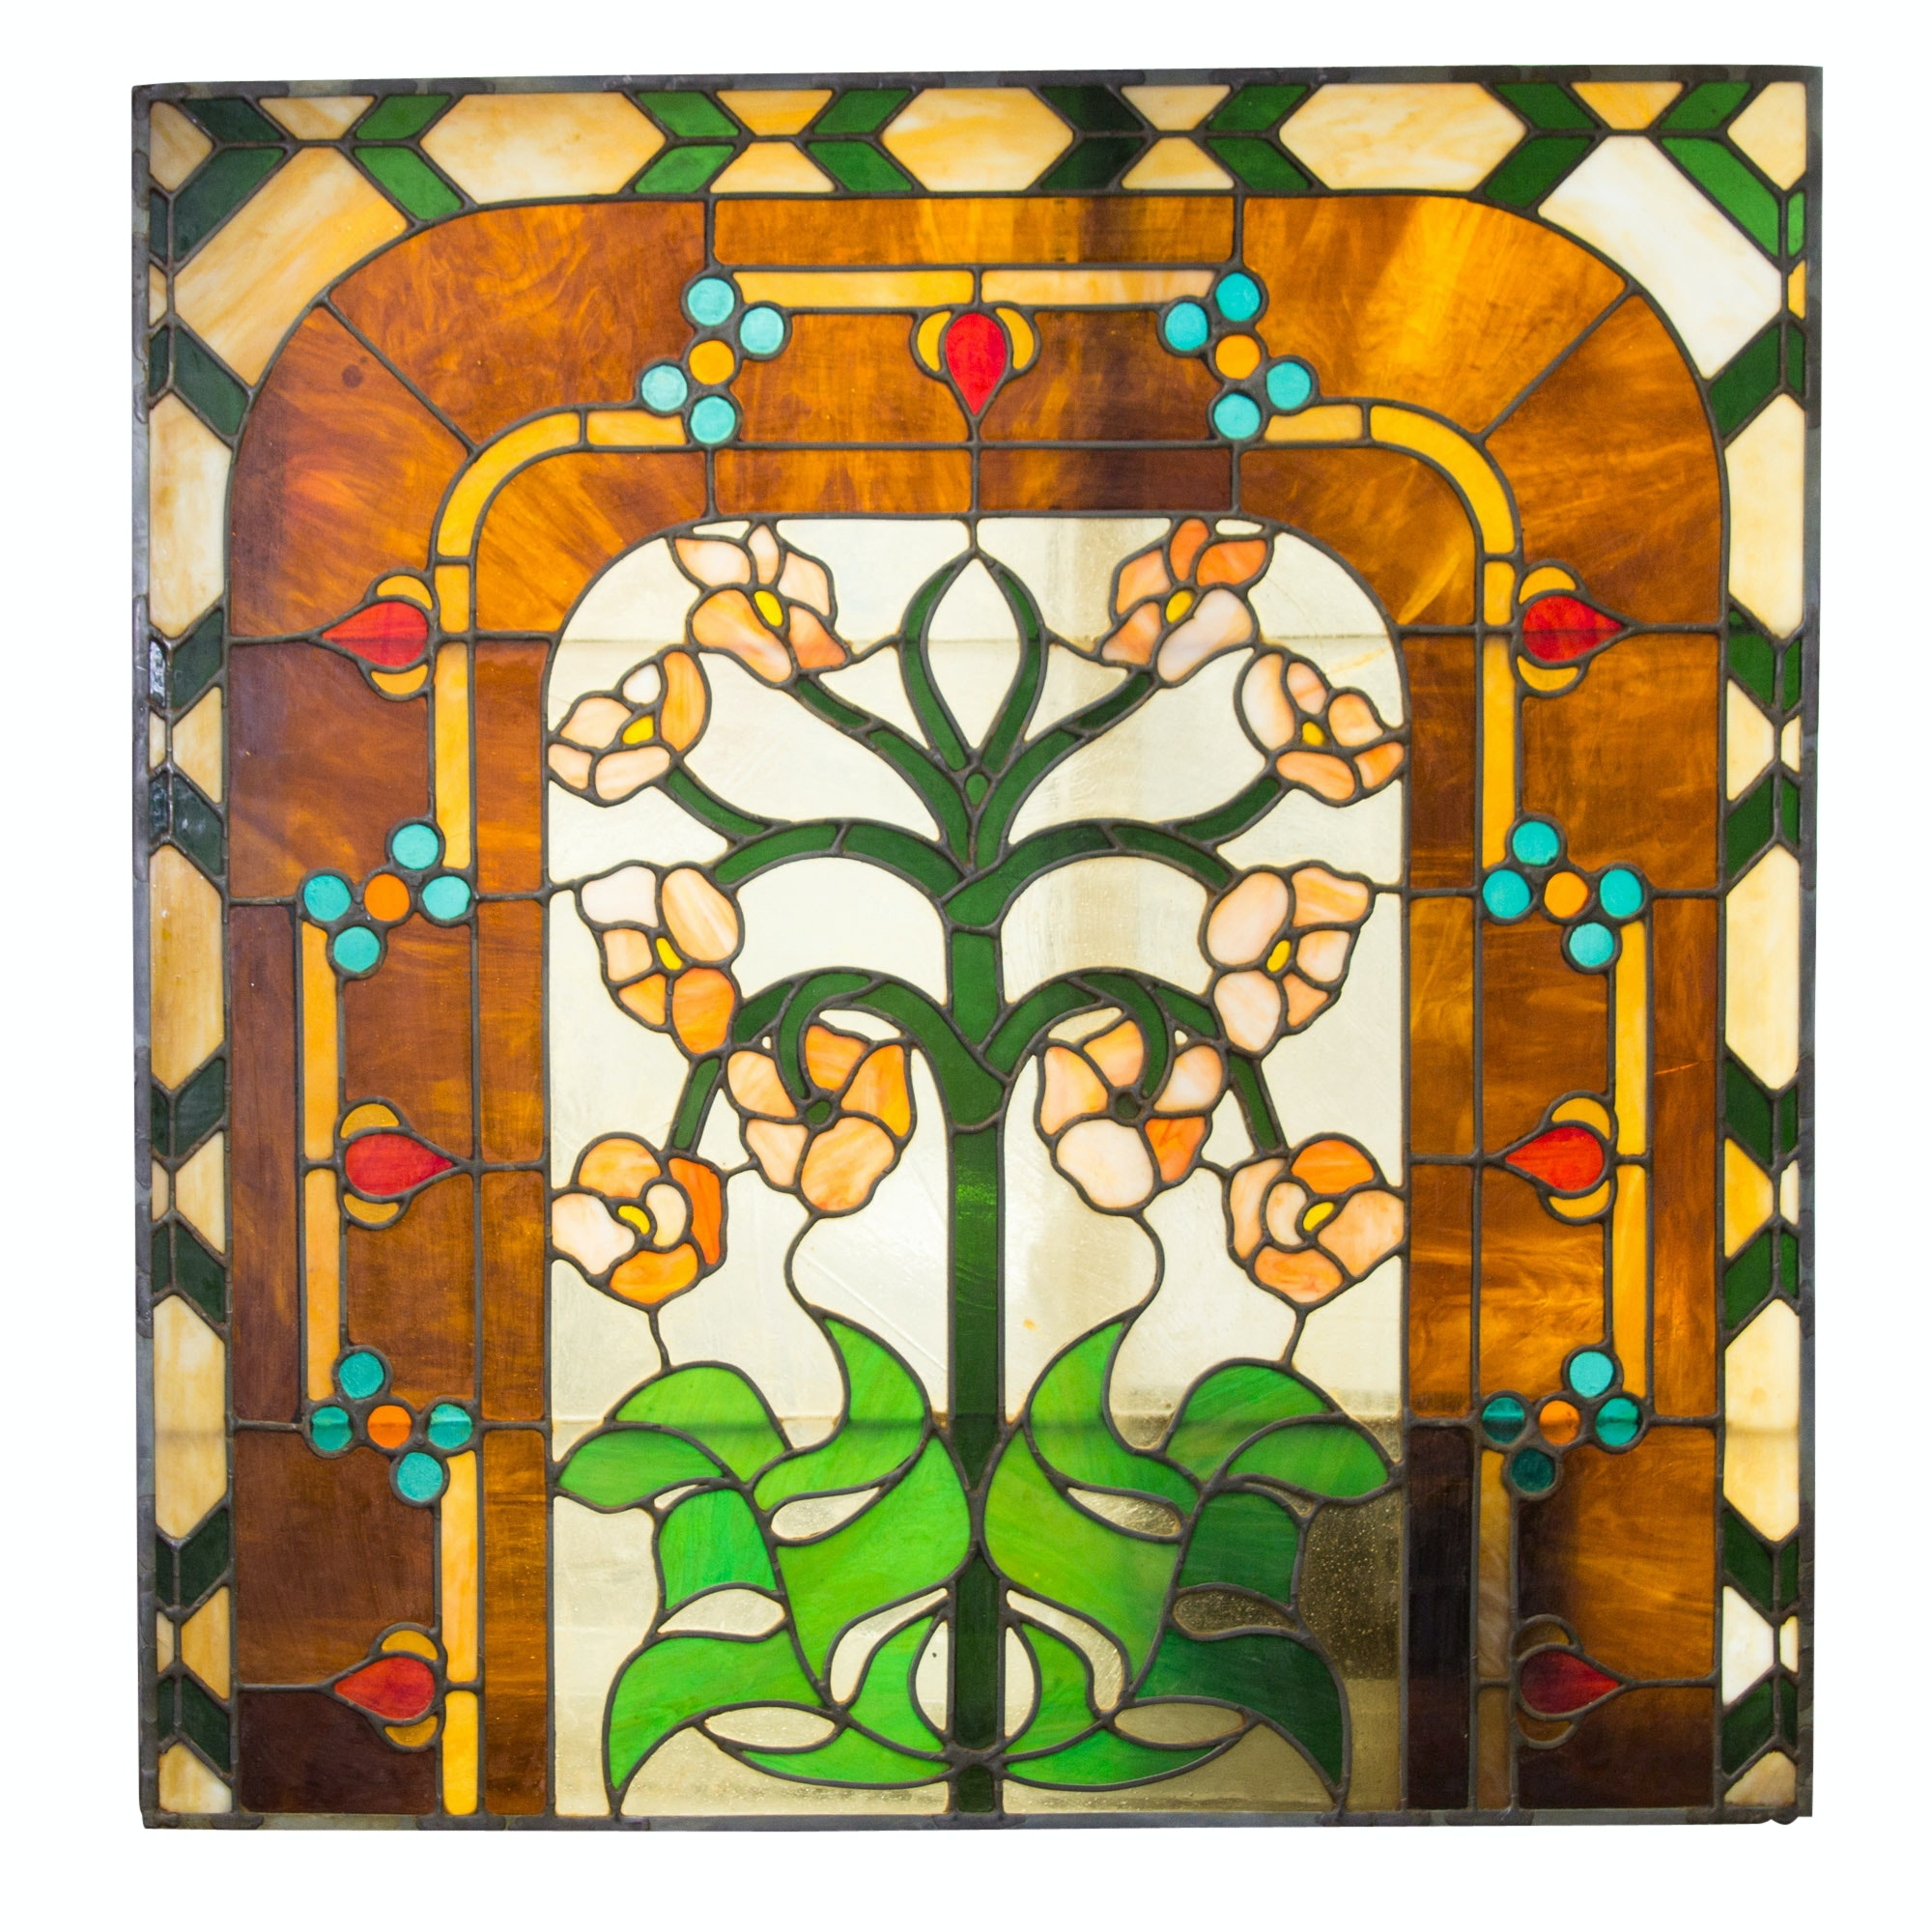 Large Floral Themed Stained Glass Panel